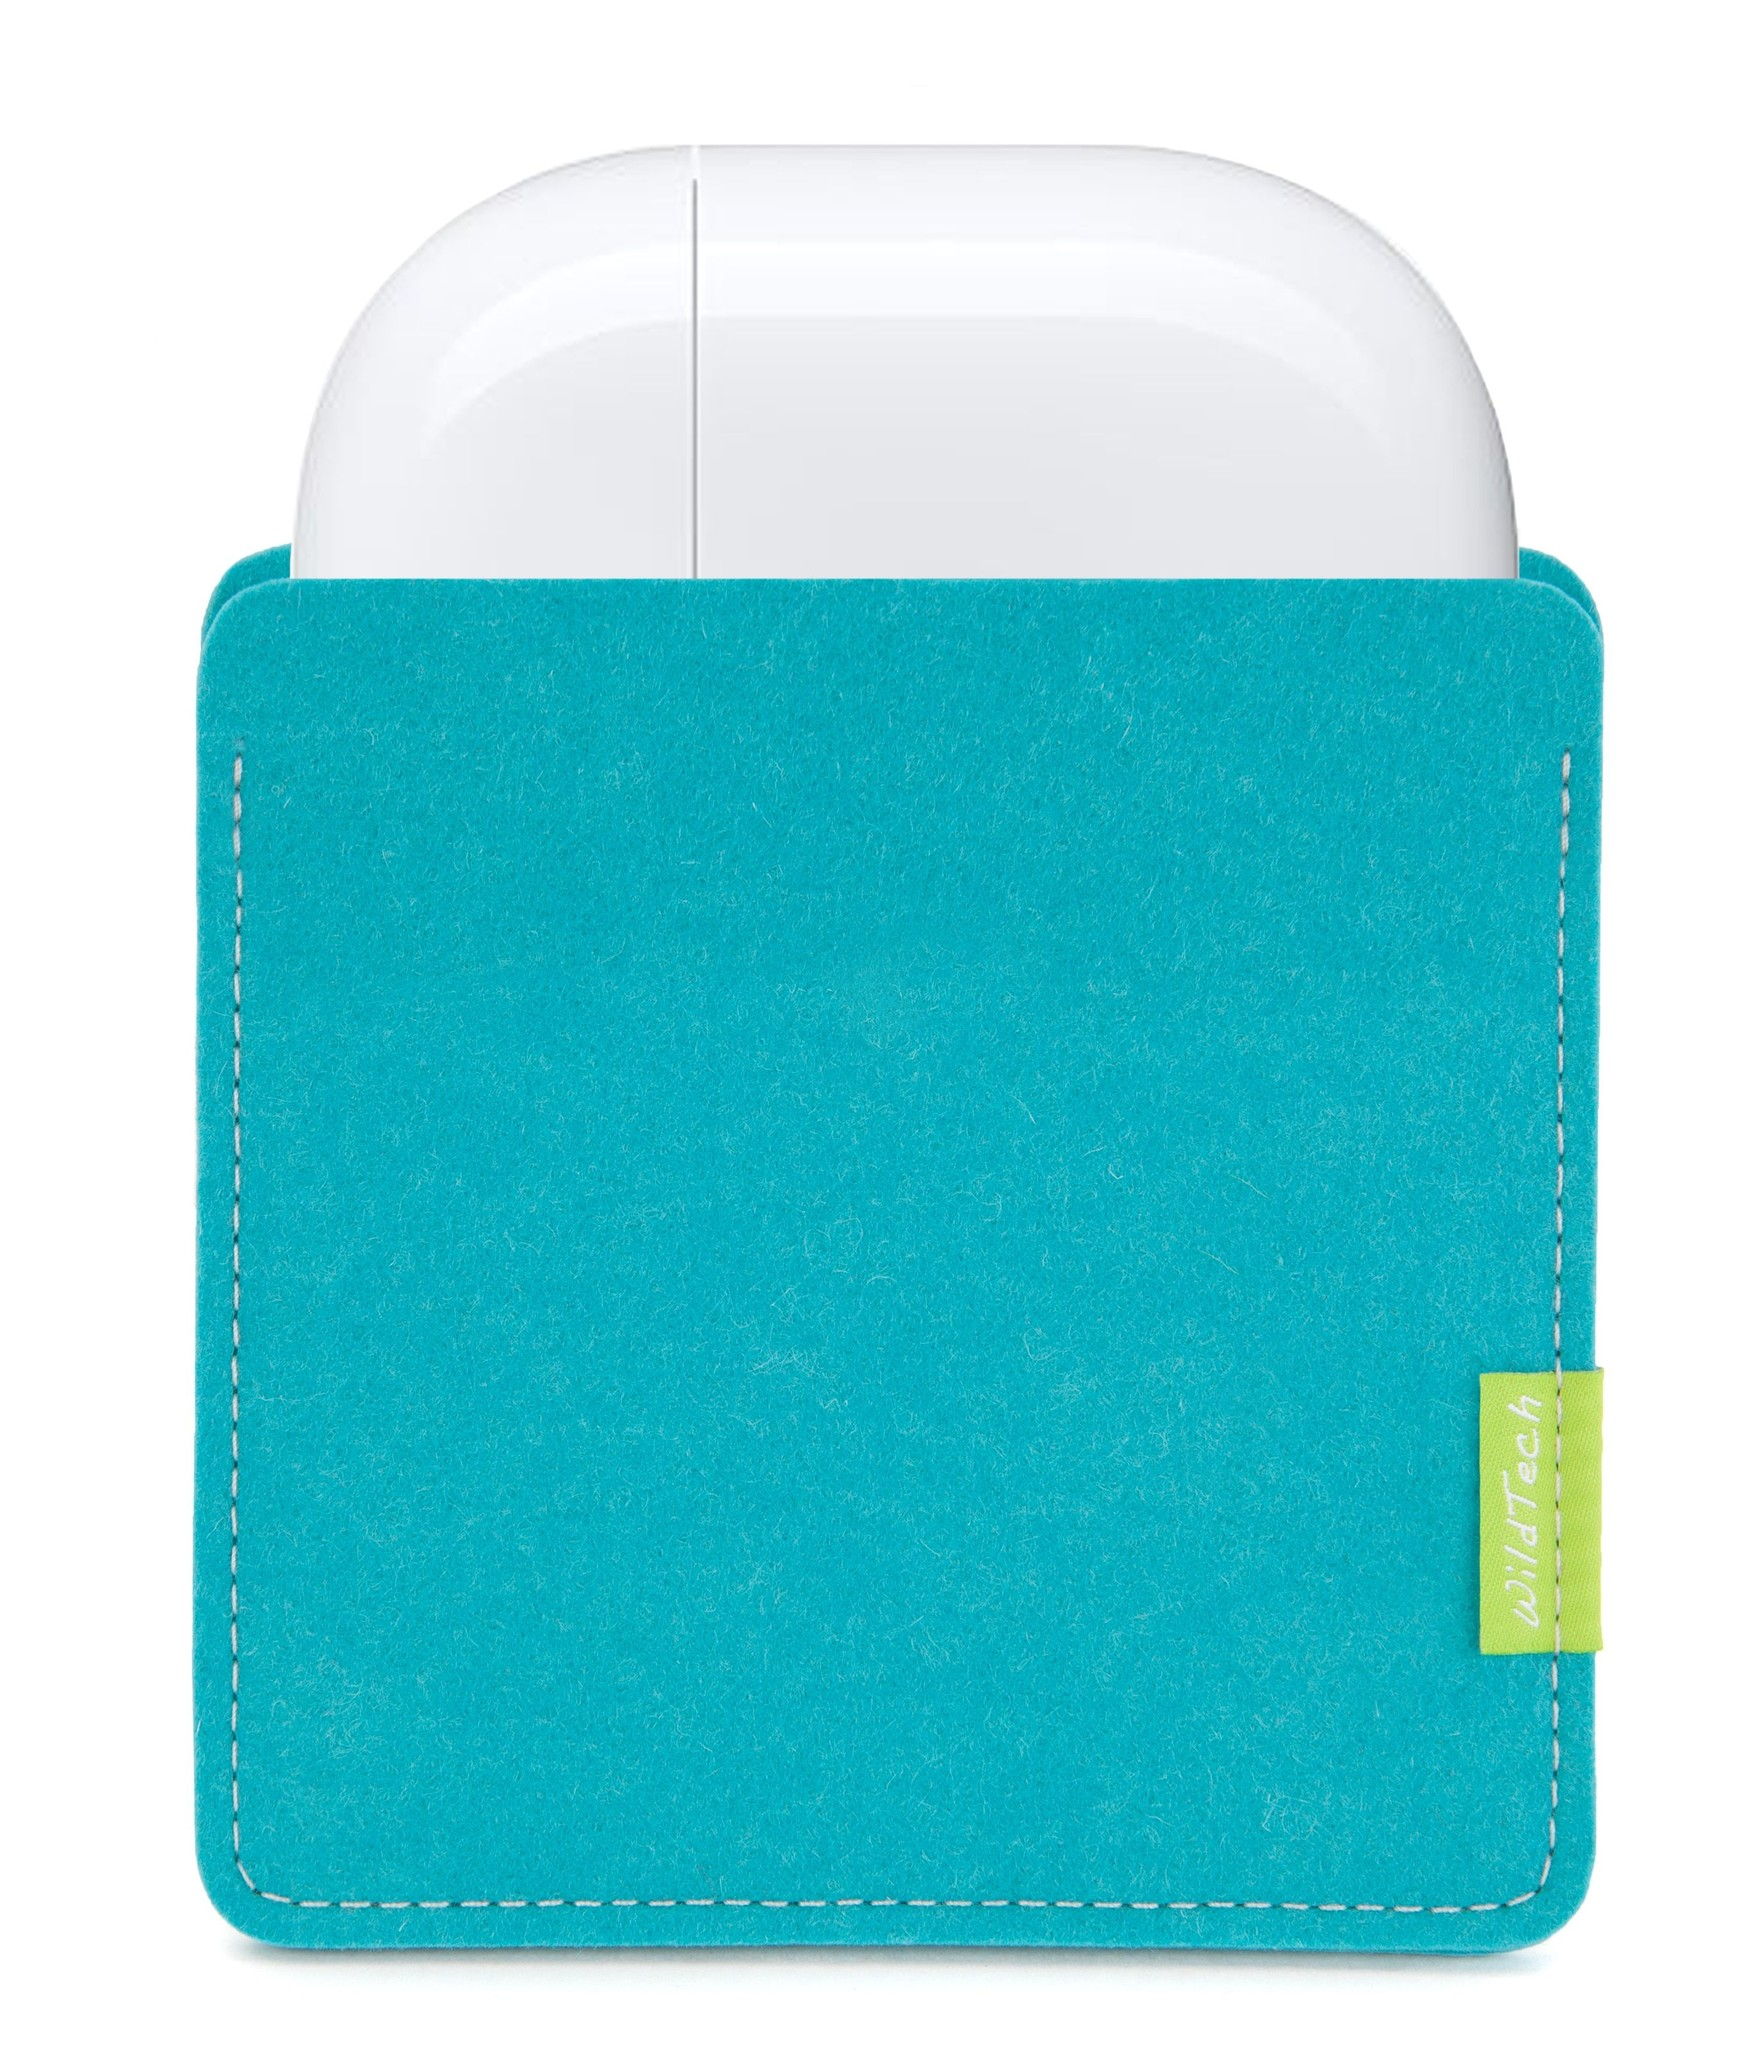 AirPods Sleeve Turquoise-1